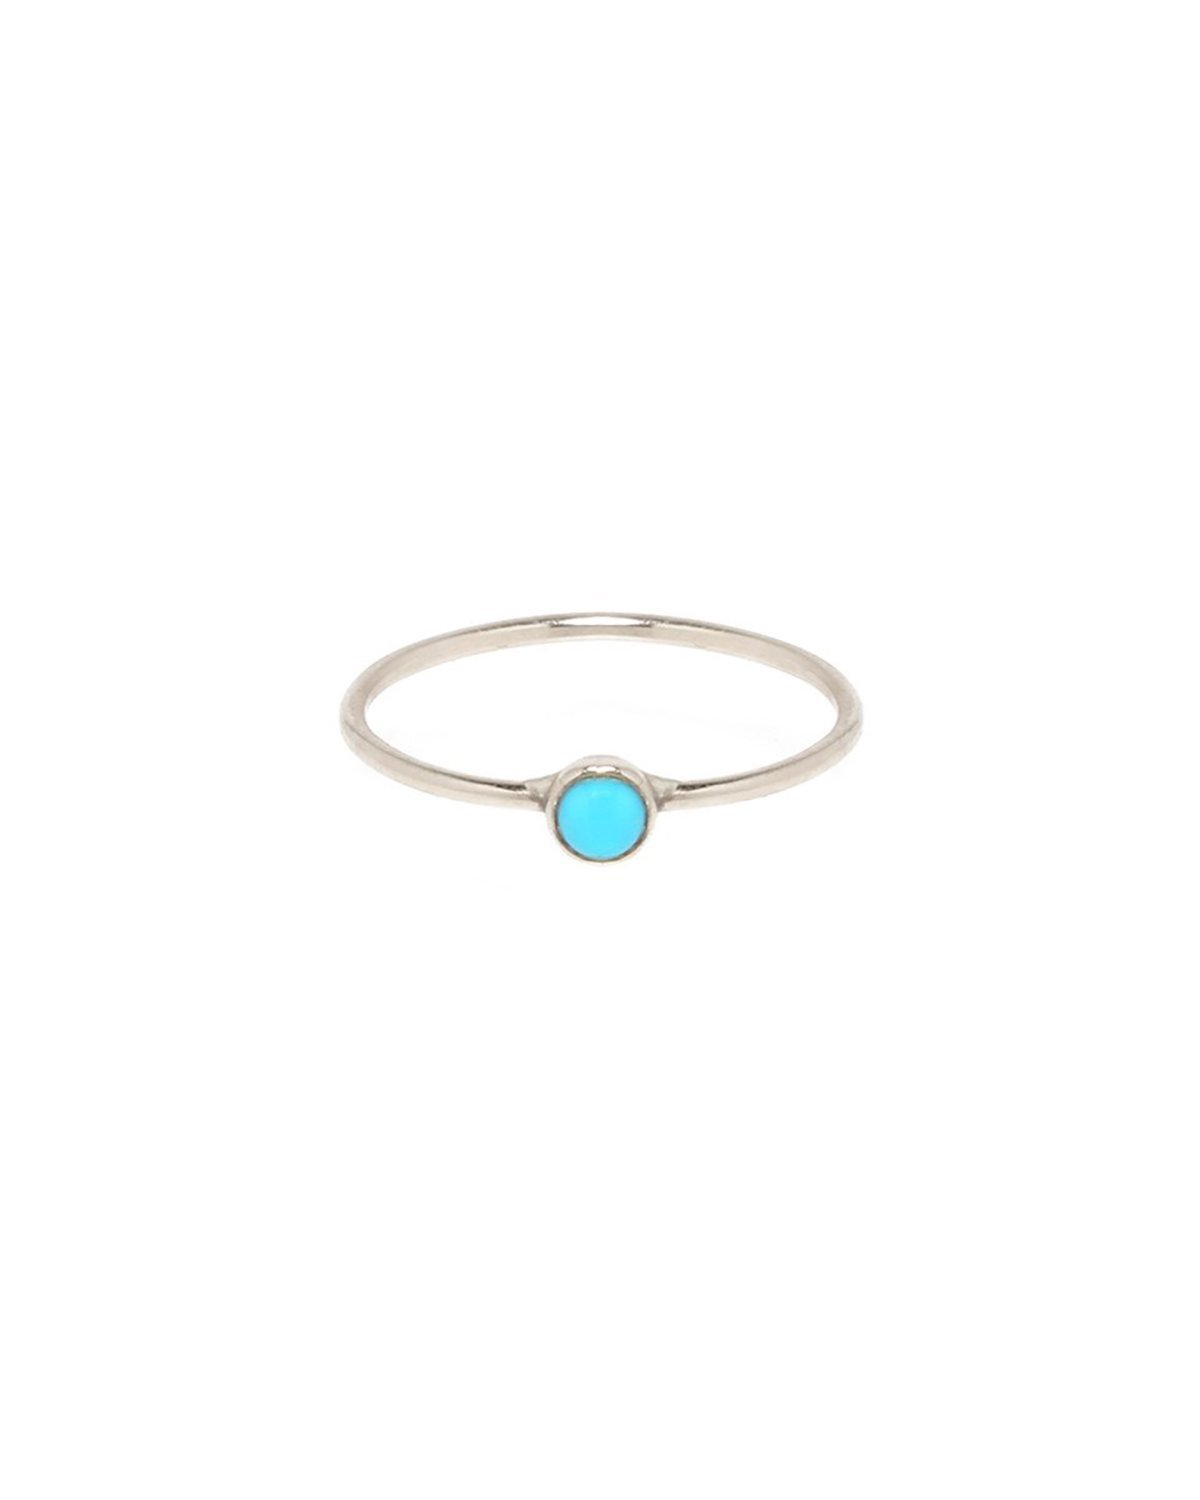 LUNA RING - Sterling Silver and Turquoise Round Bezel Single Stone stack ring